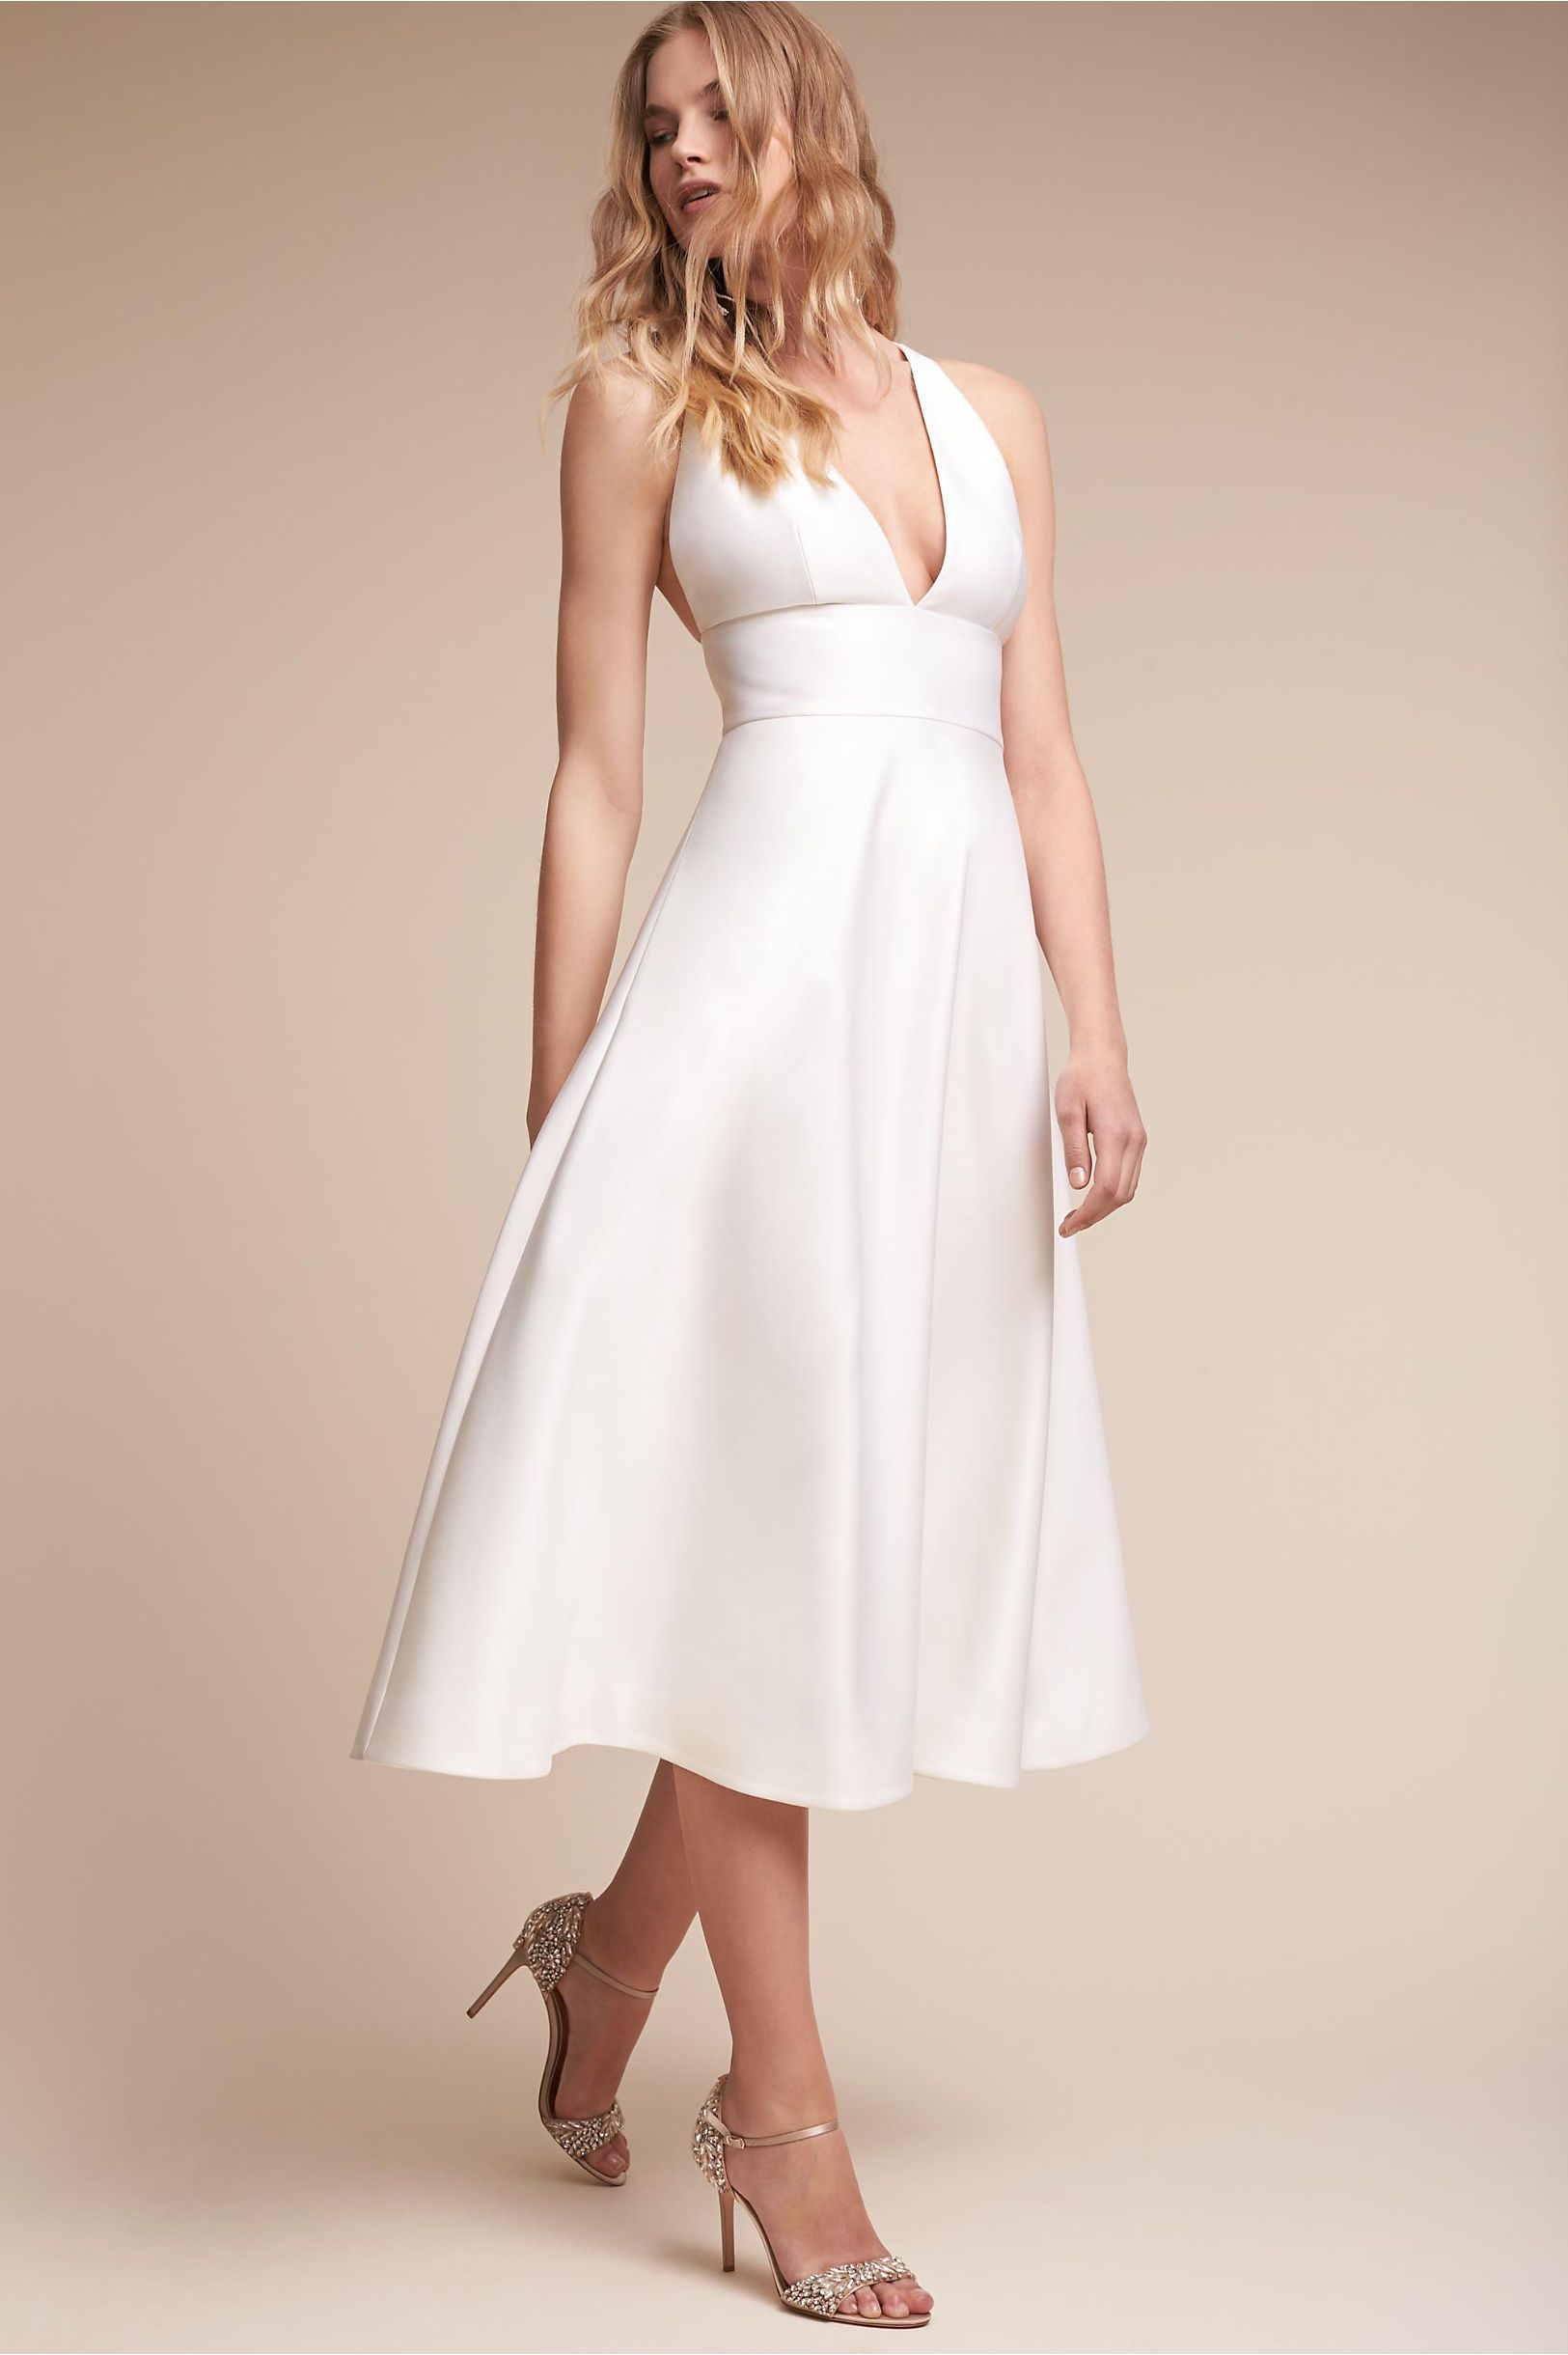 6deeefc40c BHLDN Shelby Dress in Occasion Dresses View All Dresses